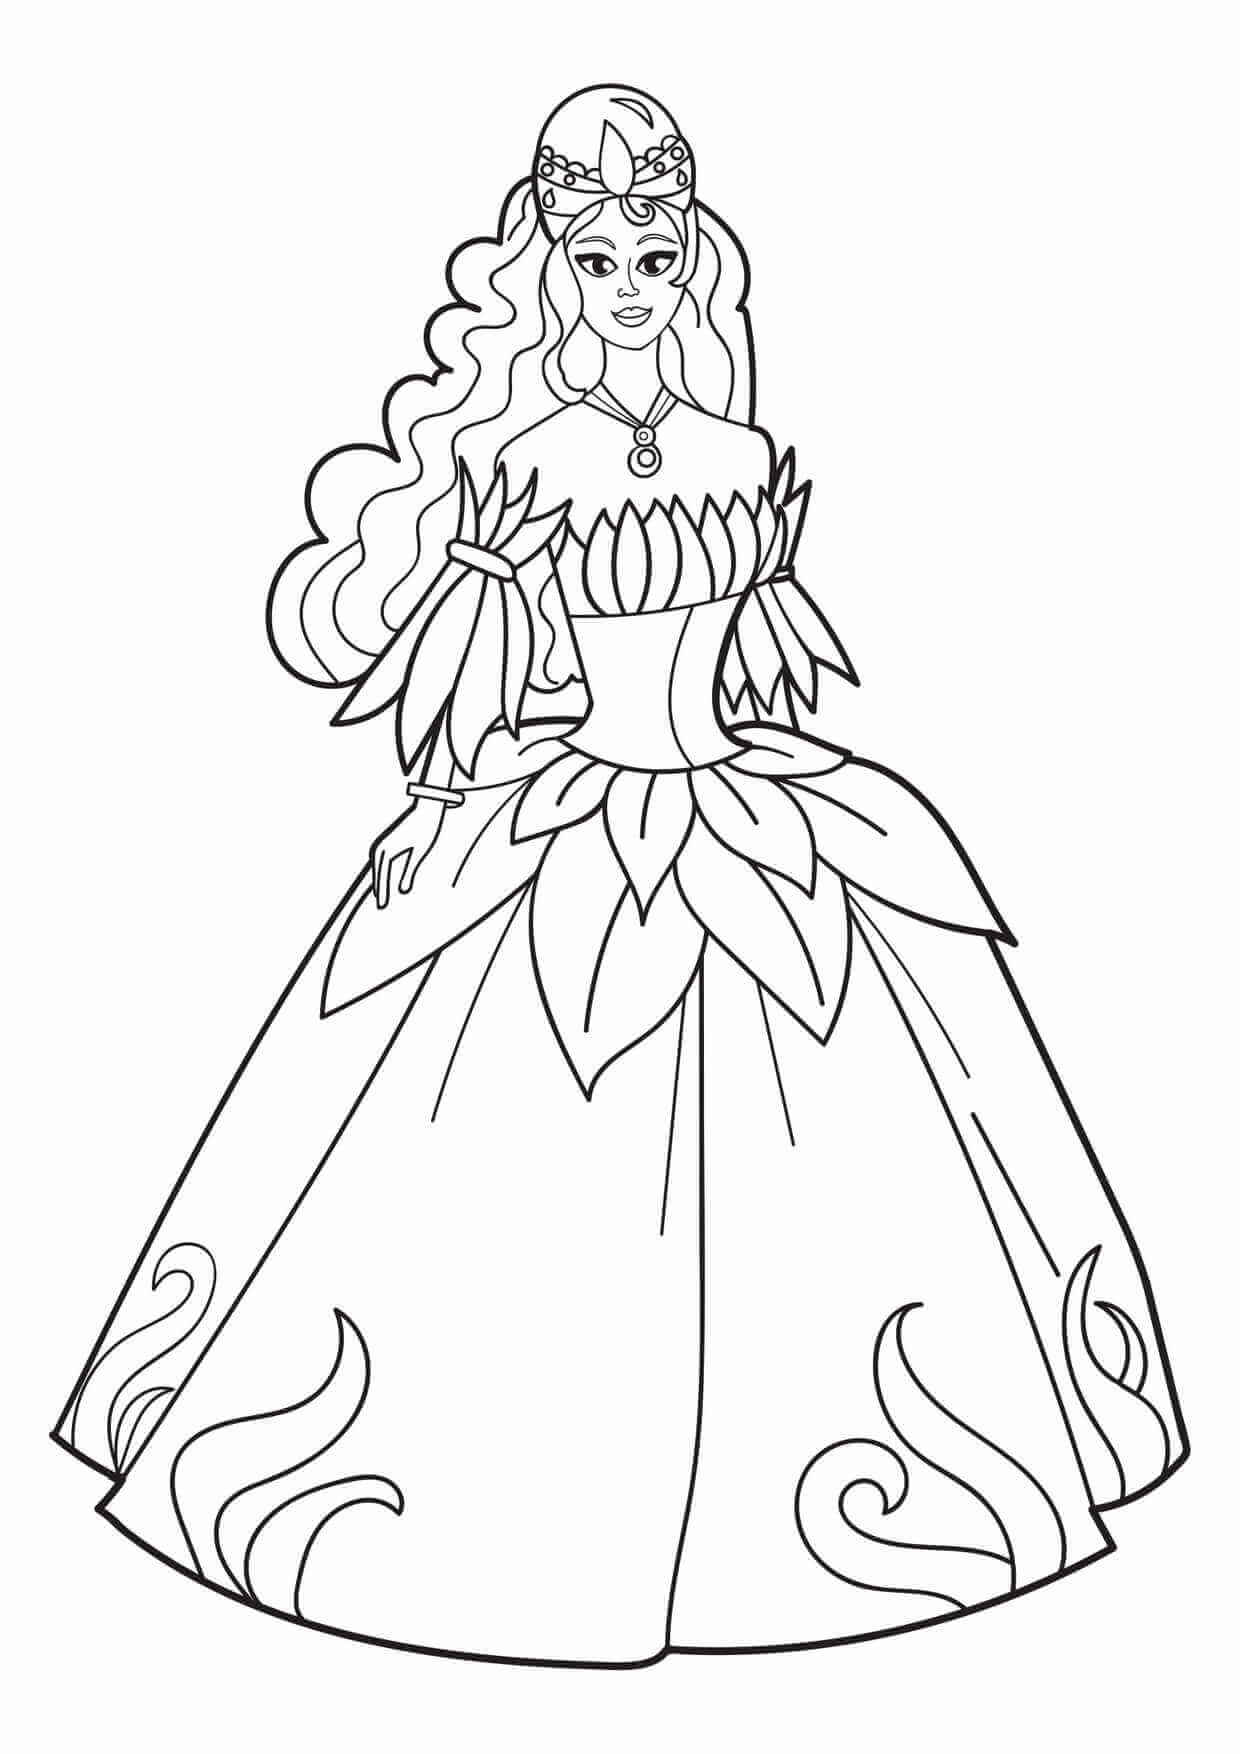 free girl coloring pages to print free printable coloring pages for girls pages free coloring girl to print